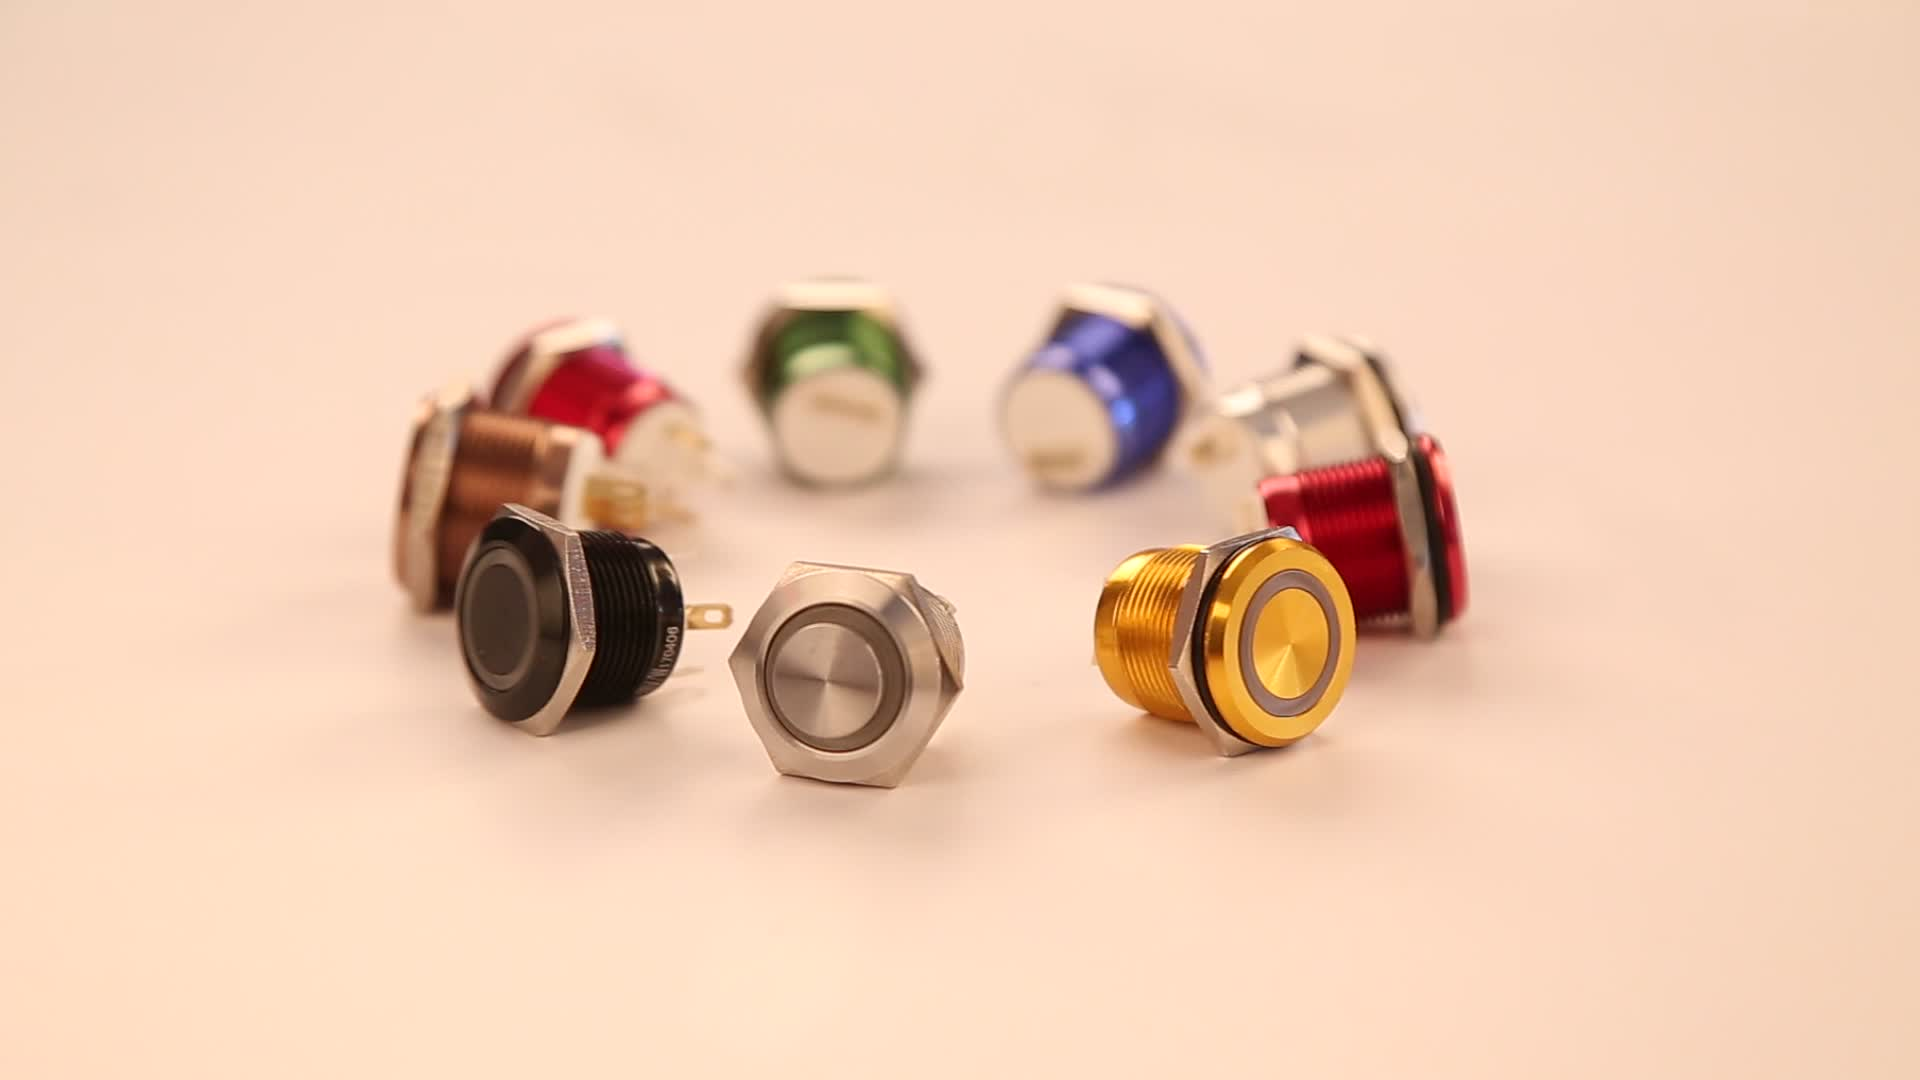 19mm Micro-travel ring led RGB led push button, 19mm Tri-color push button switch coffee machine switch